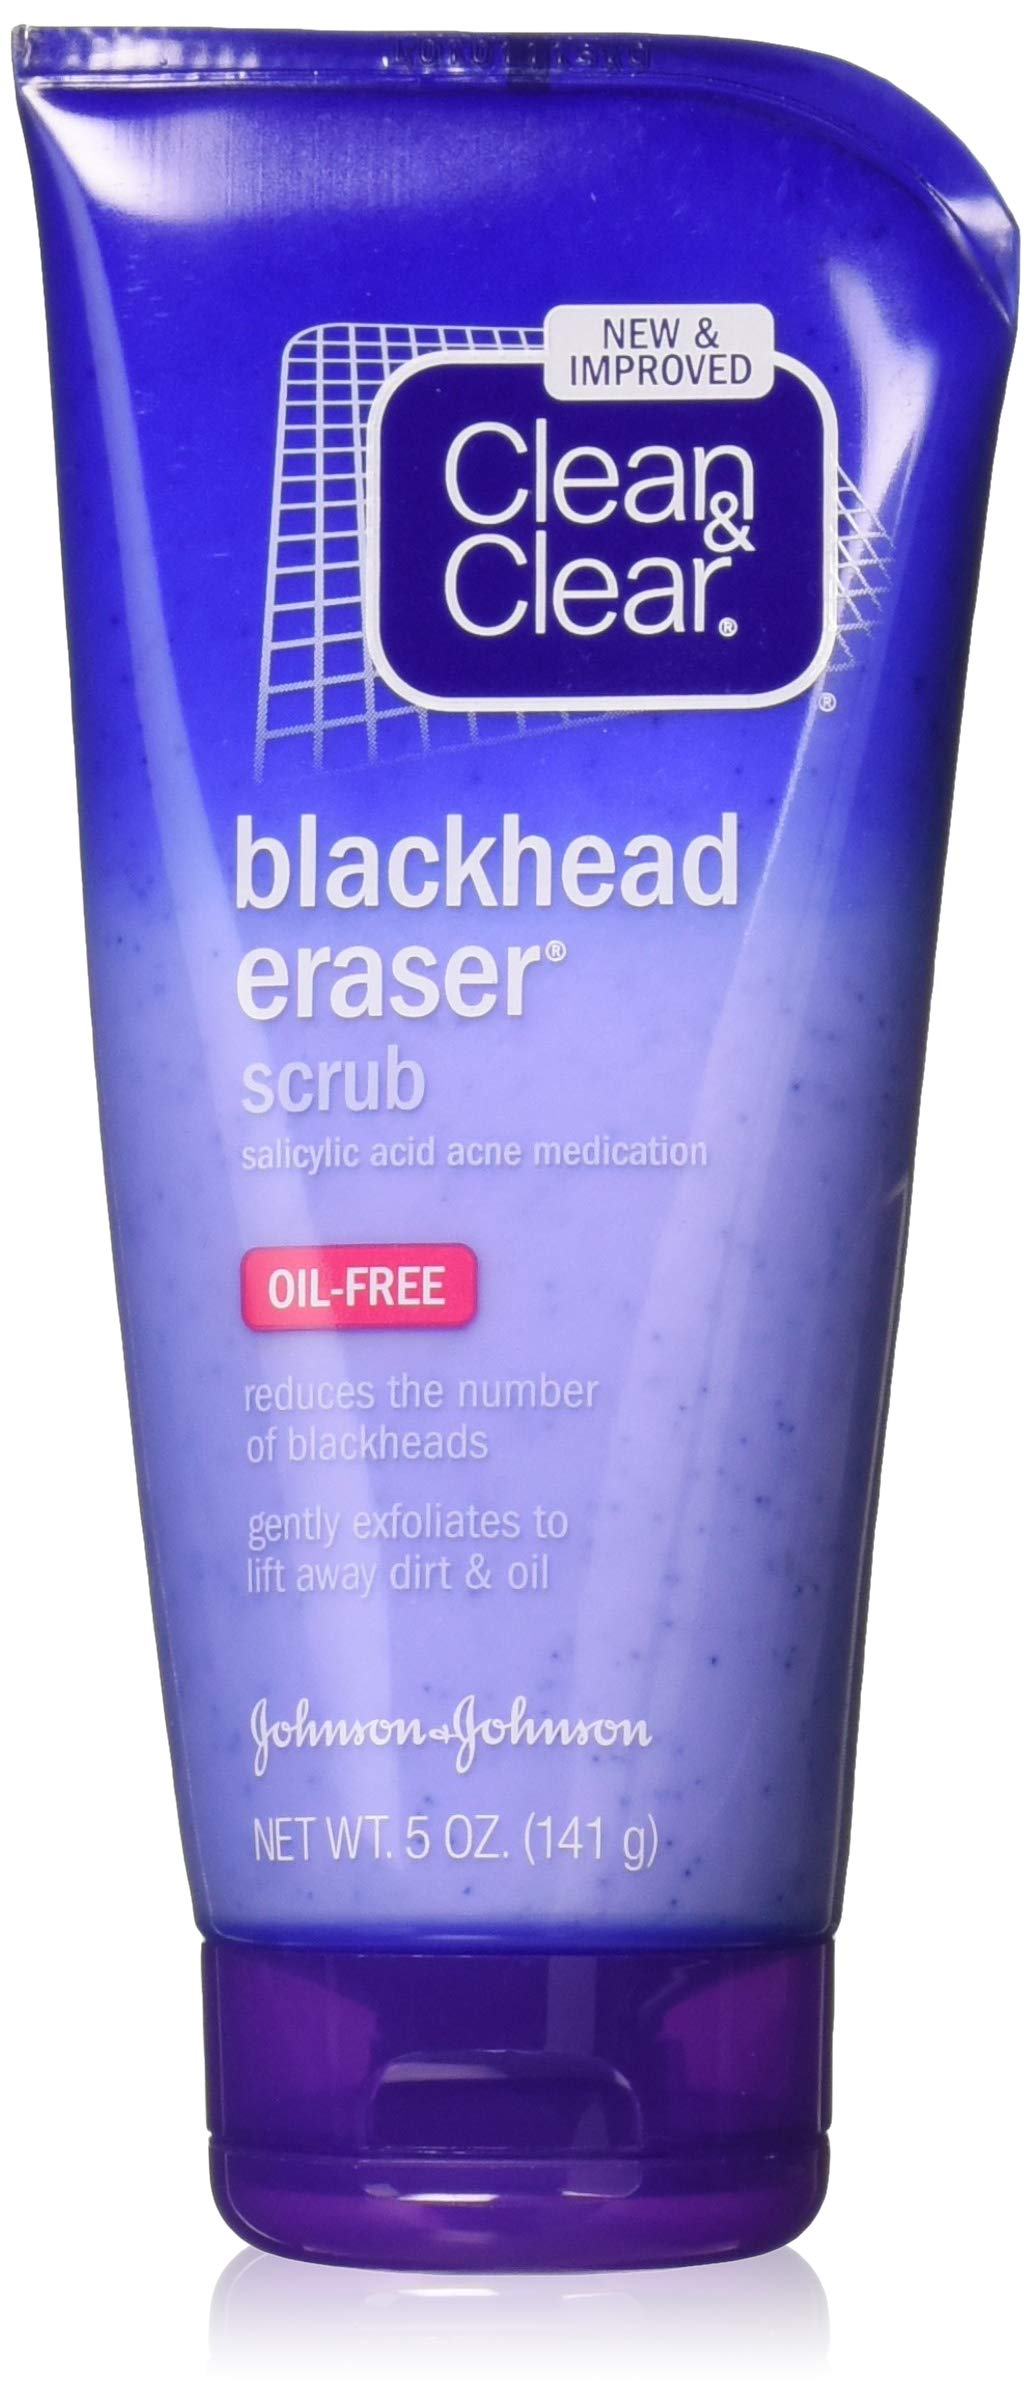 Clean & Clear Blackhead Eraser Facial Scrub with 2% Salicylic Acid Acne Medication, Oil-Free Daily Facial Scrub for Acne-Prone Skin Care, 5 oz (Pack of 3)